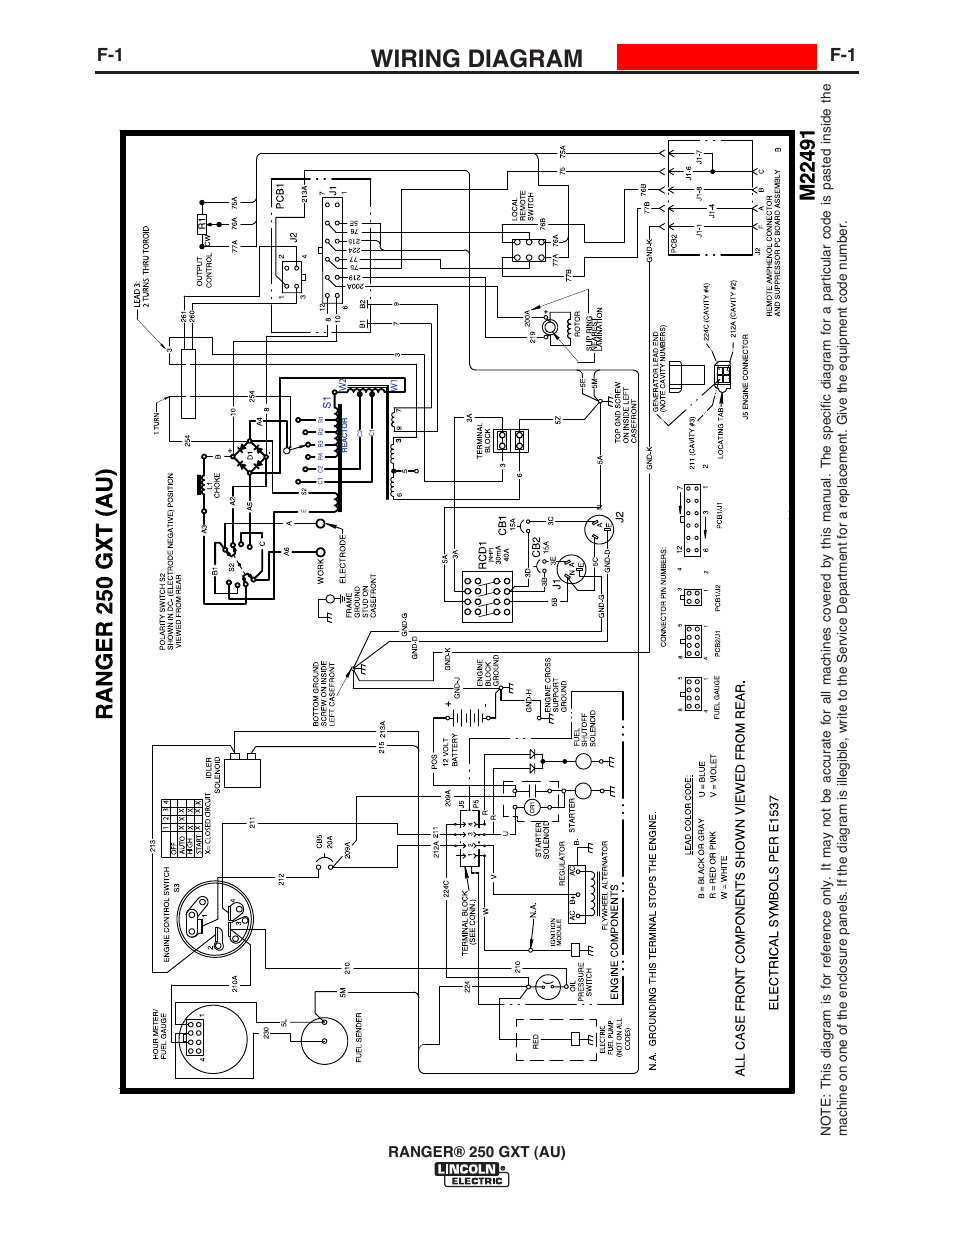 lincoln sa200 wiring diagrams auto idle with wiring library Lincoln Welder Parts wiring diagram lincoln electric im10052 ranger 250 gxt (au) user hvac wiring schematics lincoln